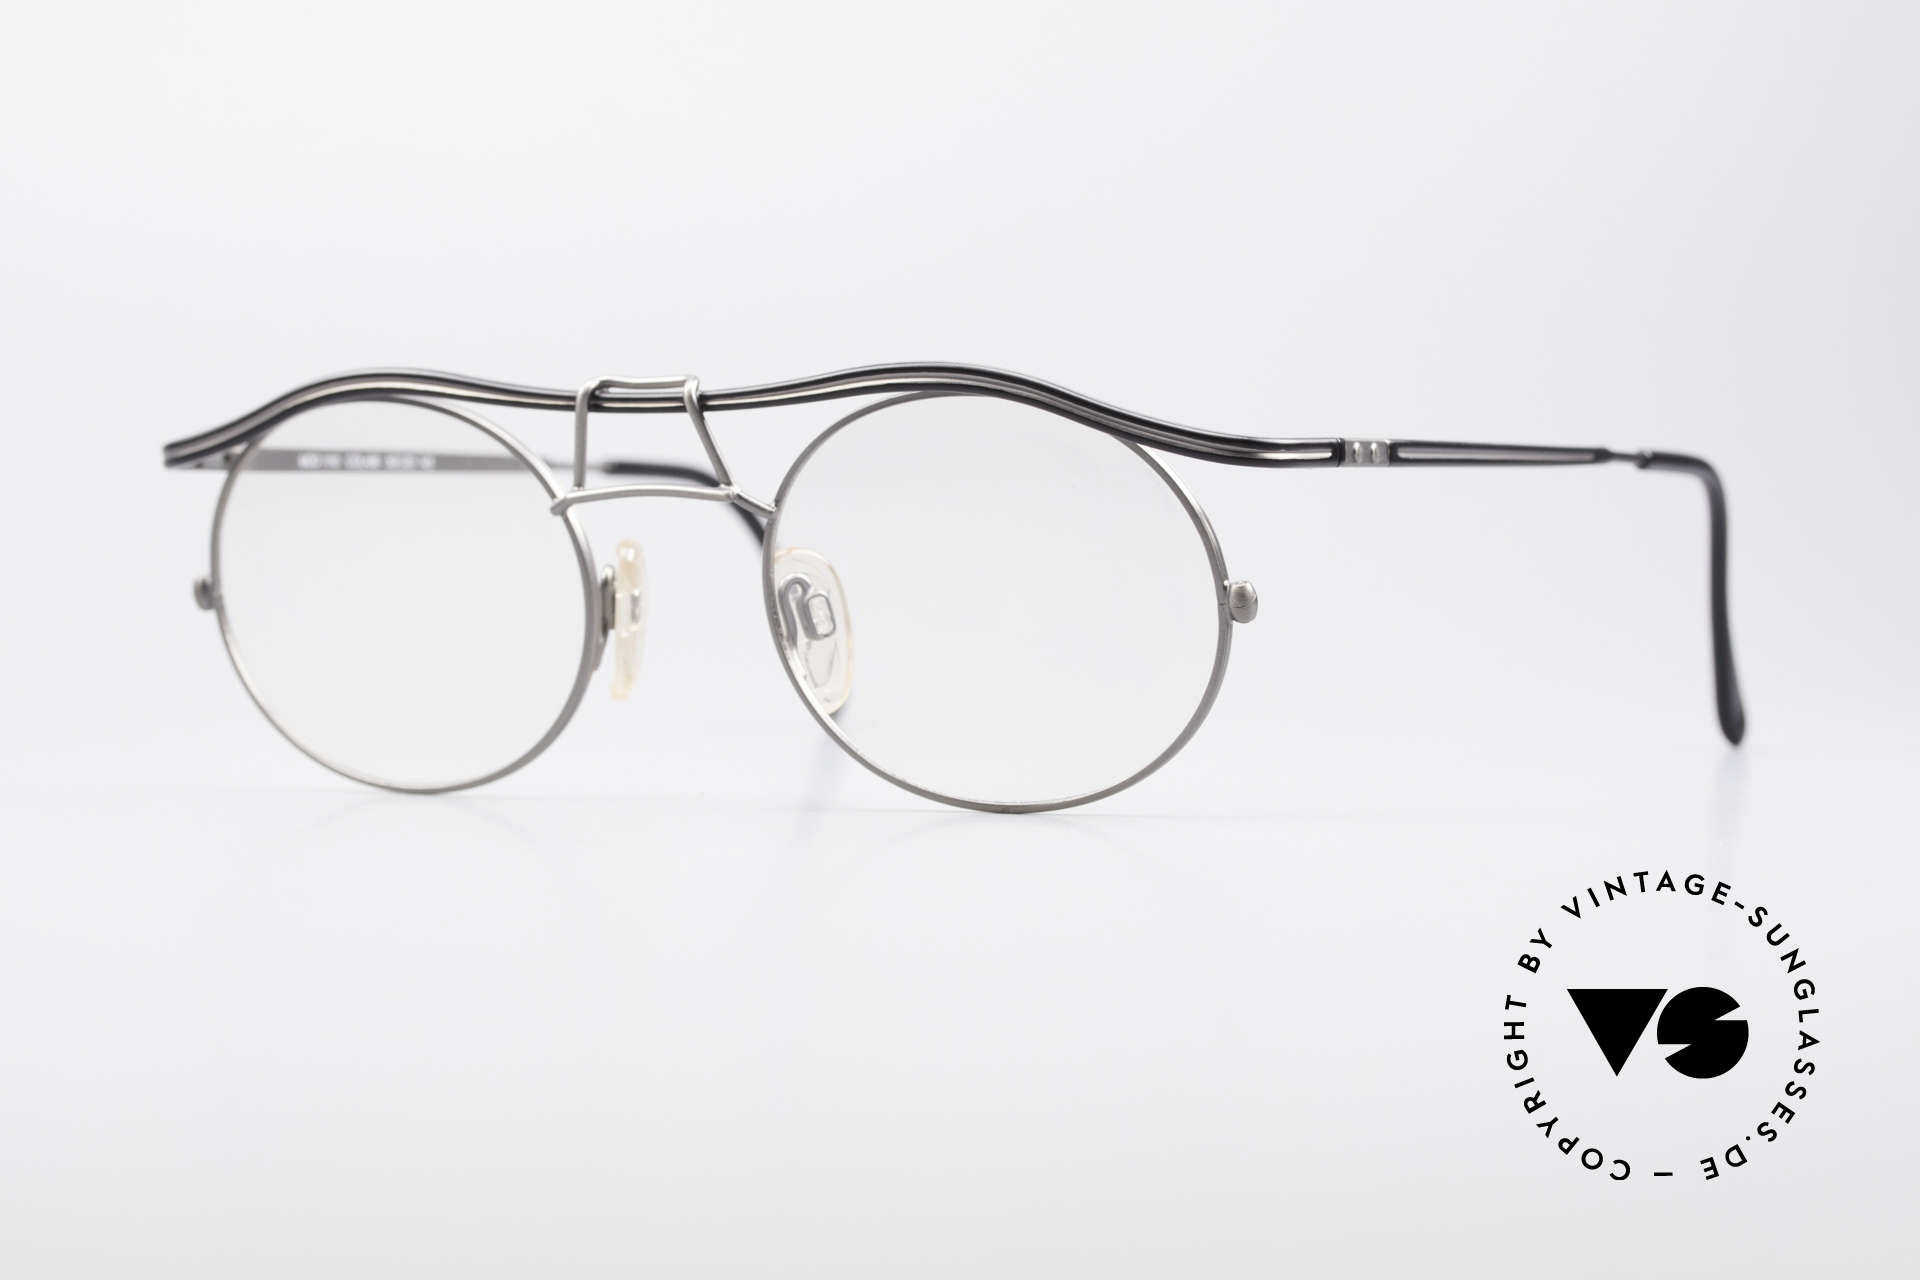 Cazal 1110 - Point 2 90's Industrial Vintage Frame, 1110: one of the top-models of the Cazal Point 2 series, Made for Men